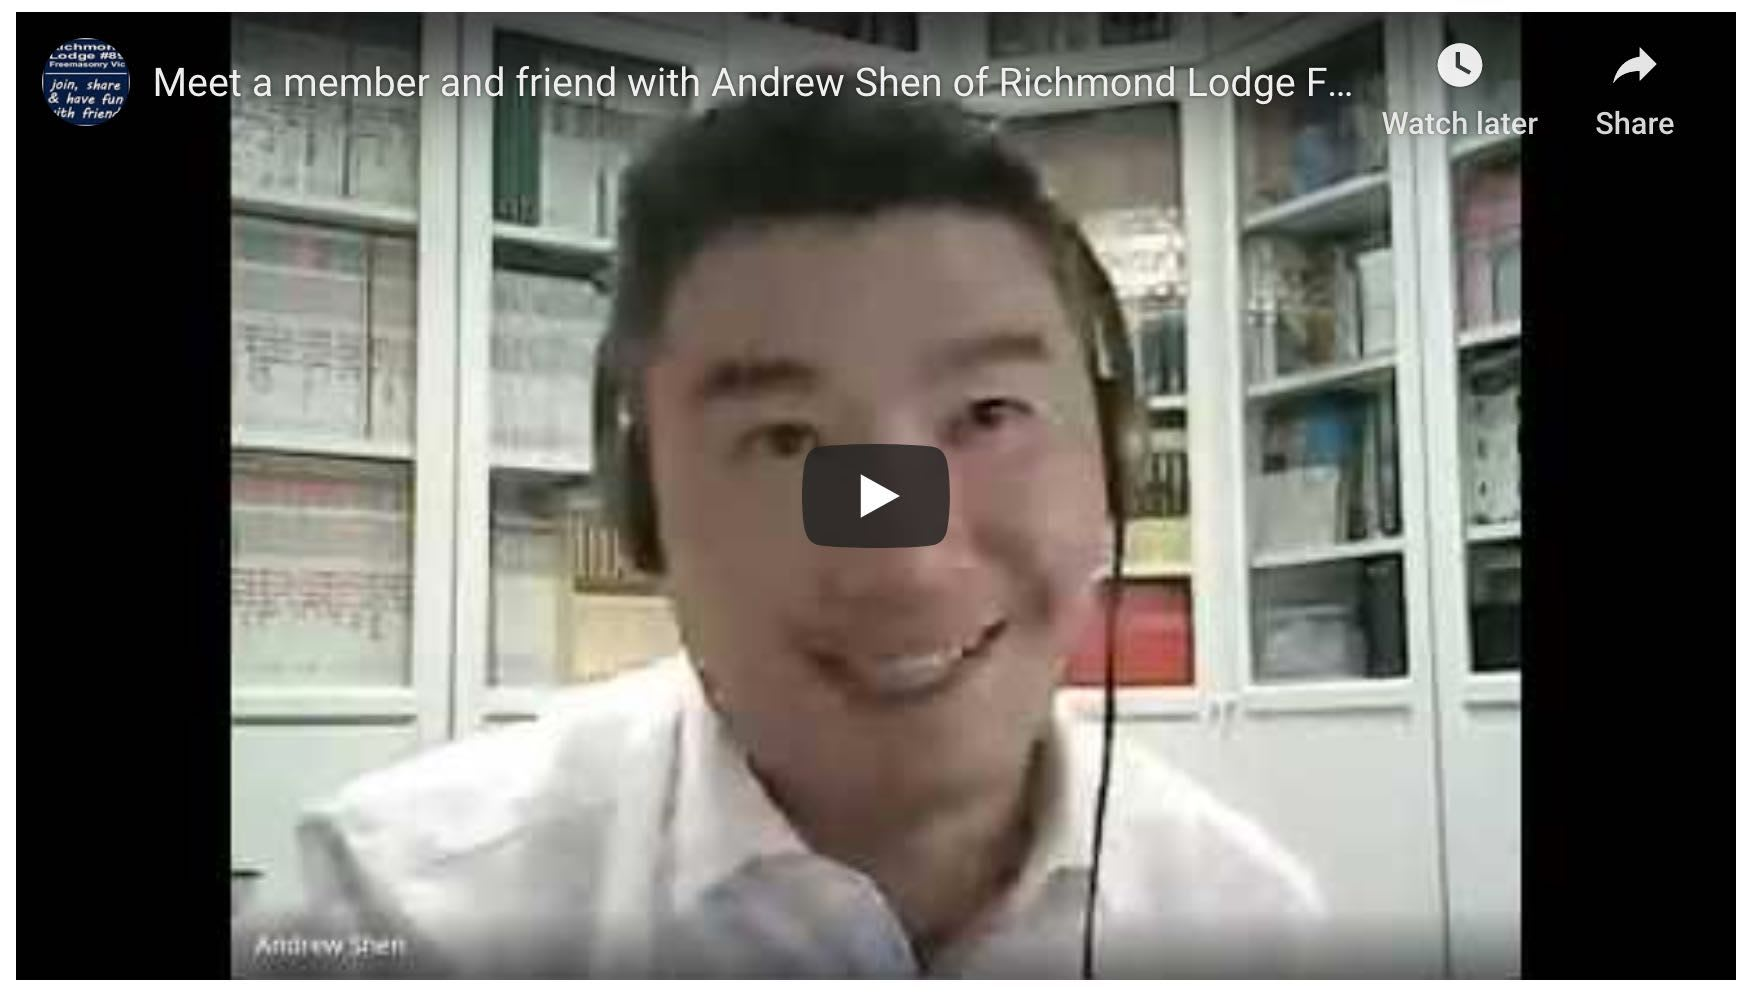 Meet a member and friend with Andrew Shen of Richmond Lodge Freemasonry Victoria